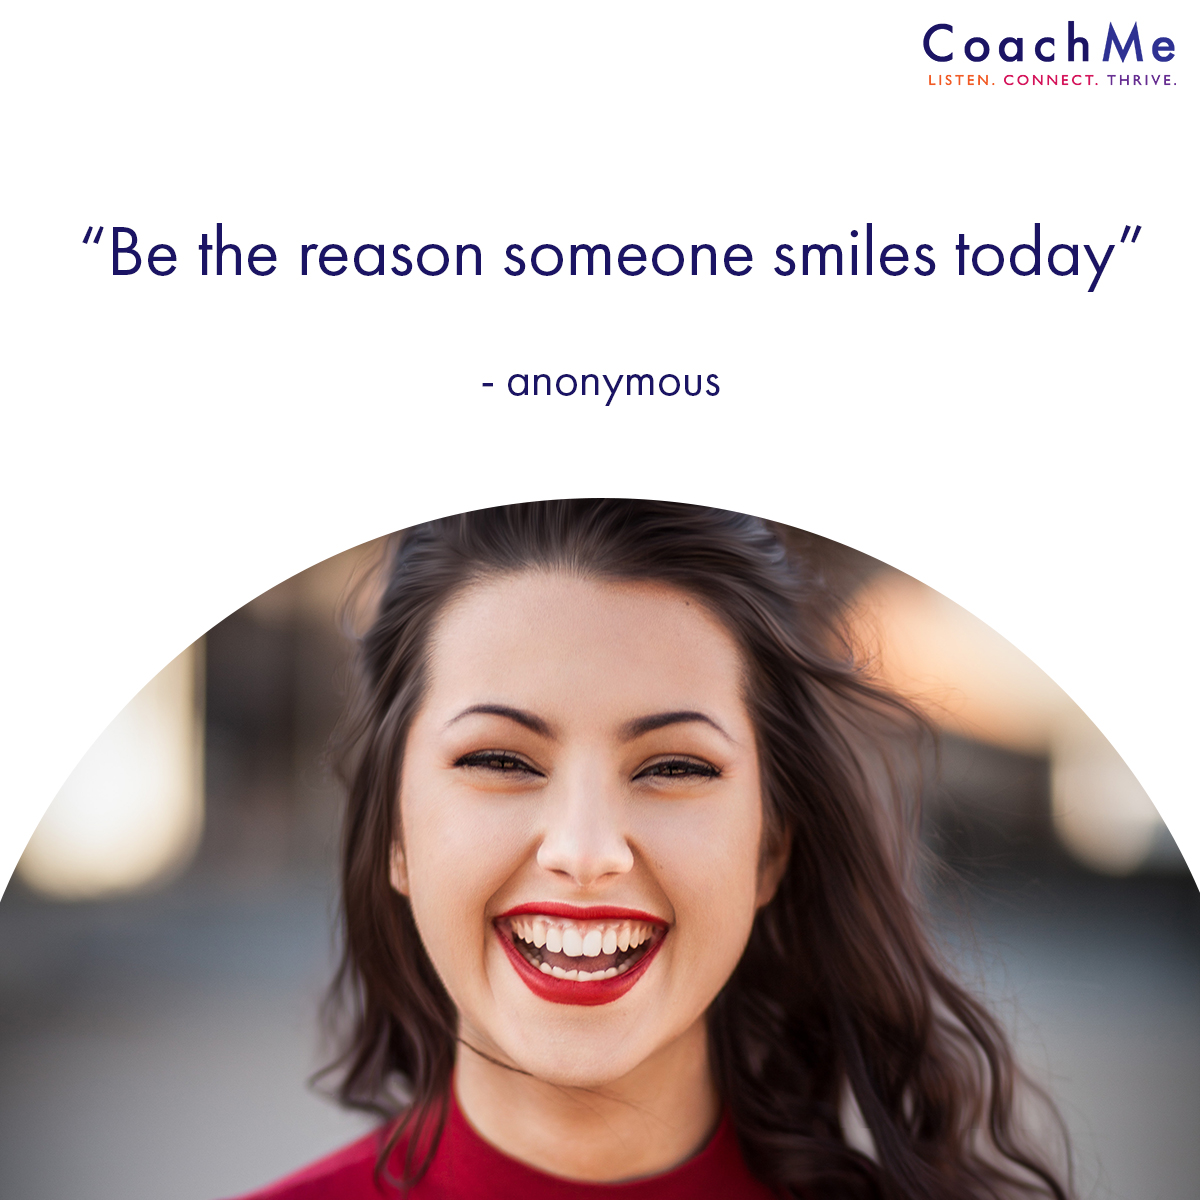 Coaching Quotations - Smile Today - Coaching Network - CoachMe Vancouver